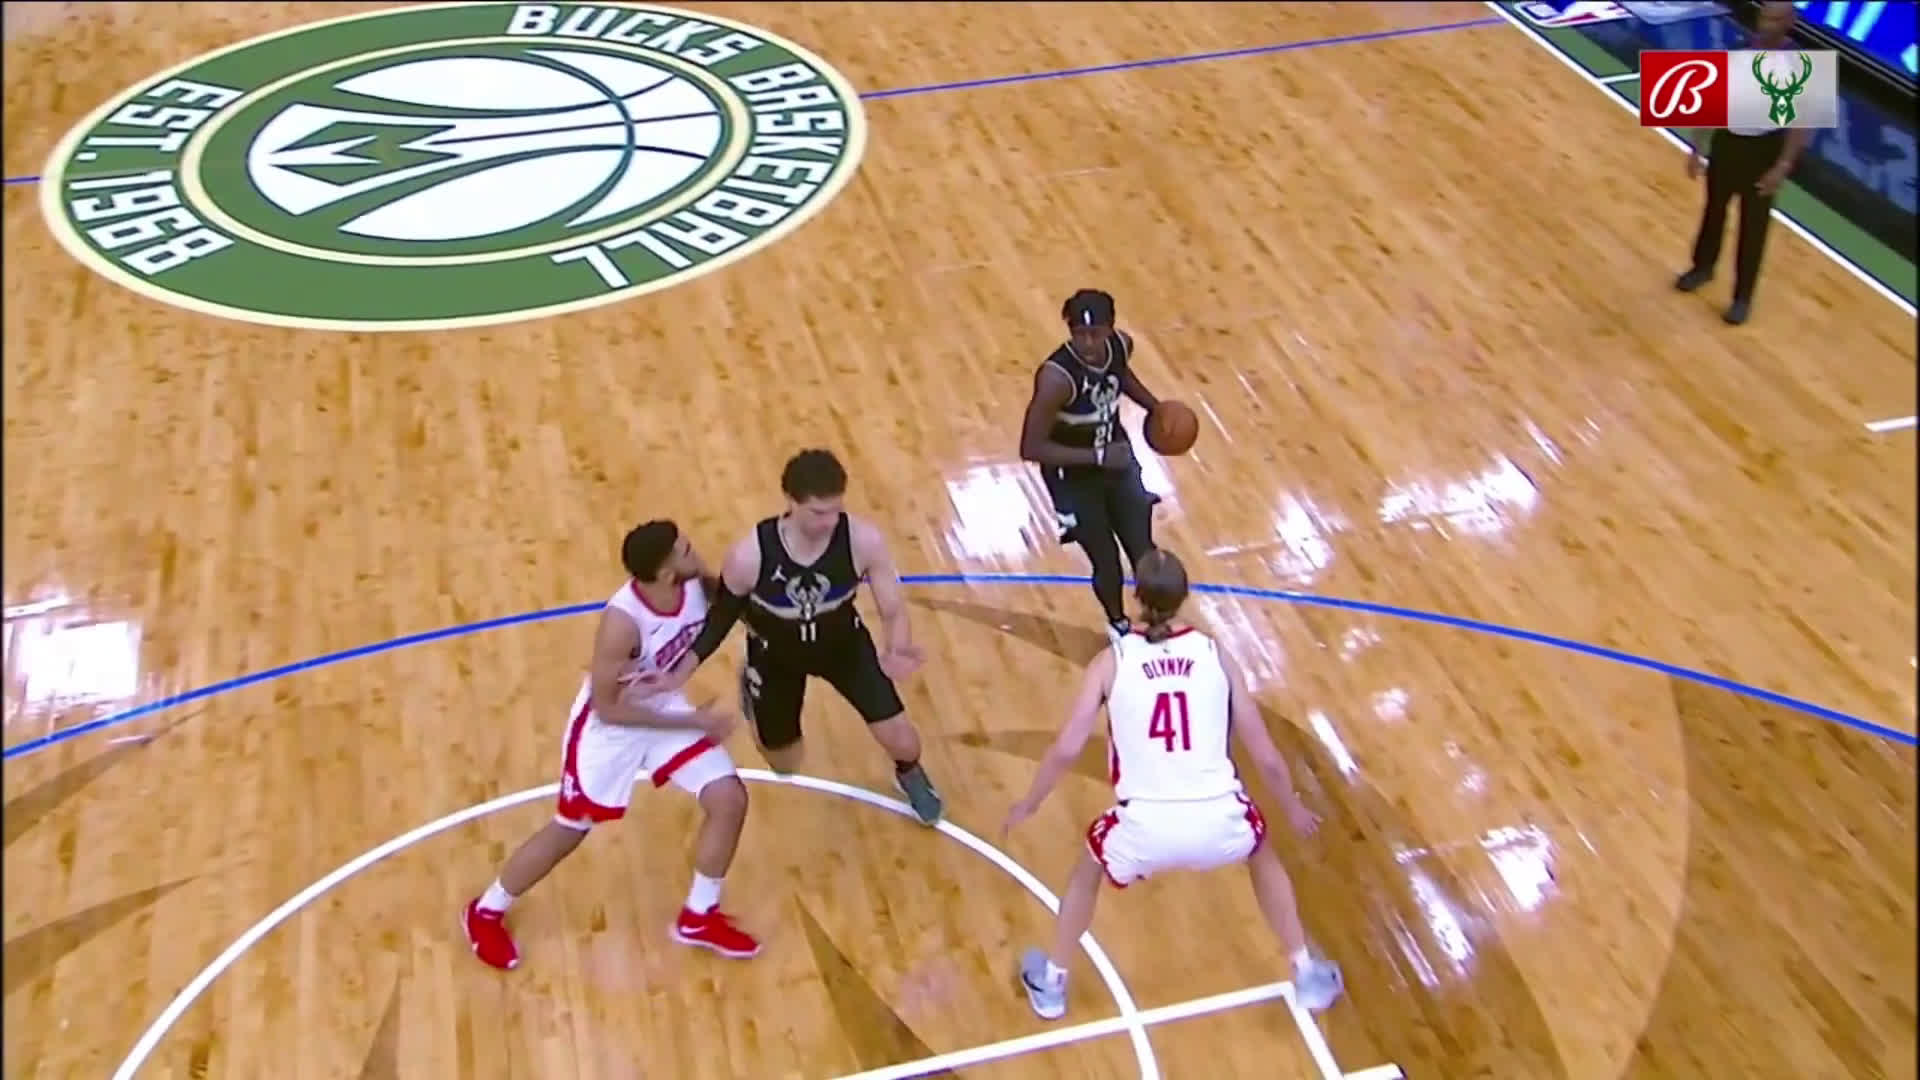 [Highlight] Brook Lopez opens up Bucks scoring with an alley oop from Giannis